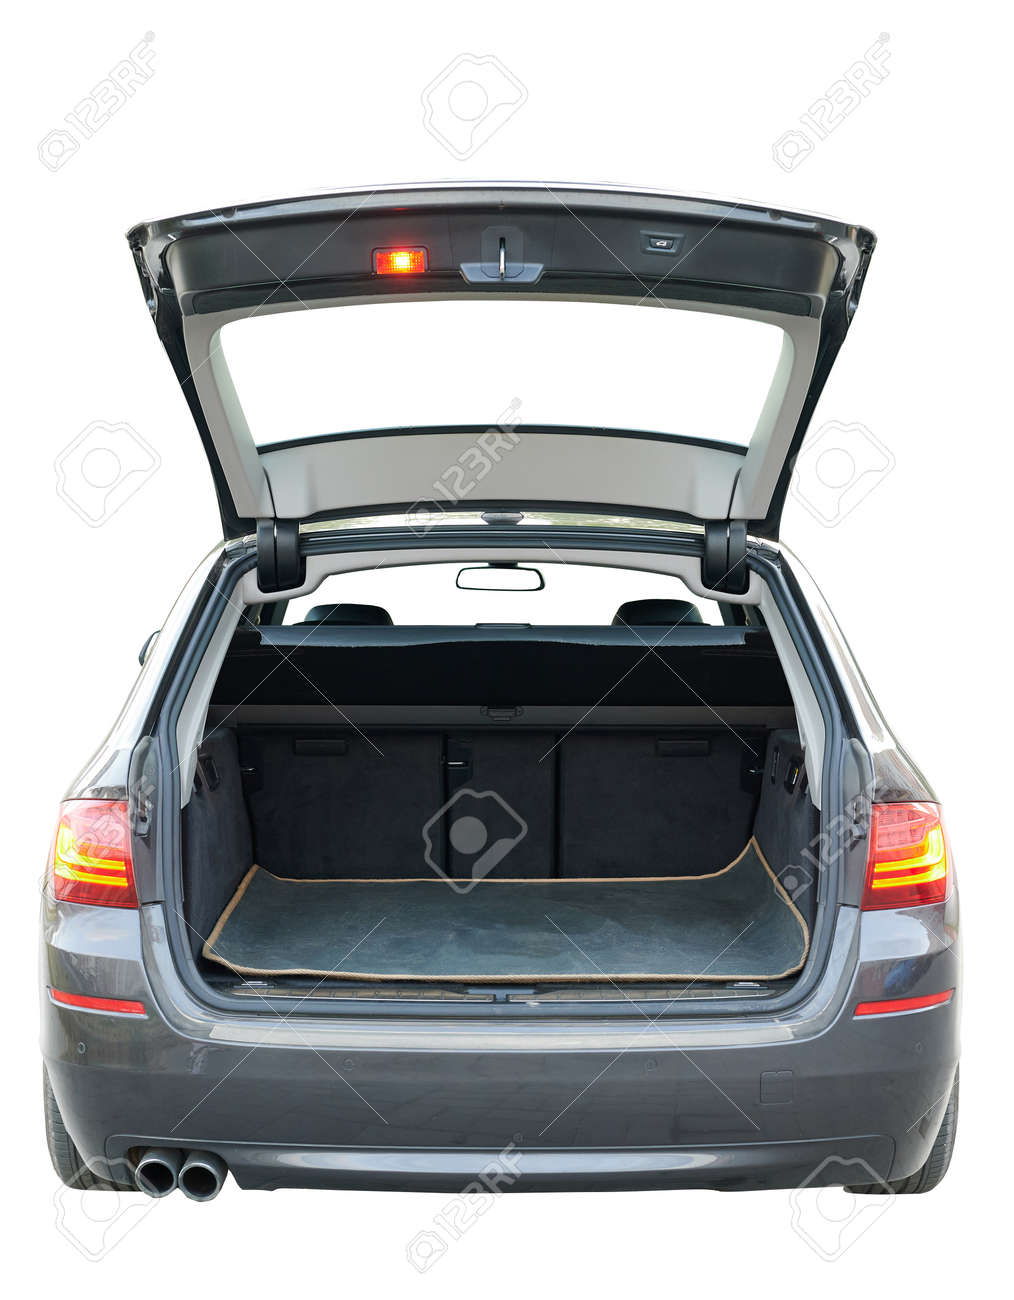 Opened empty trunk of modern car isolated rear view - 171863706